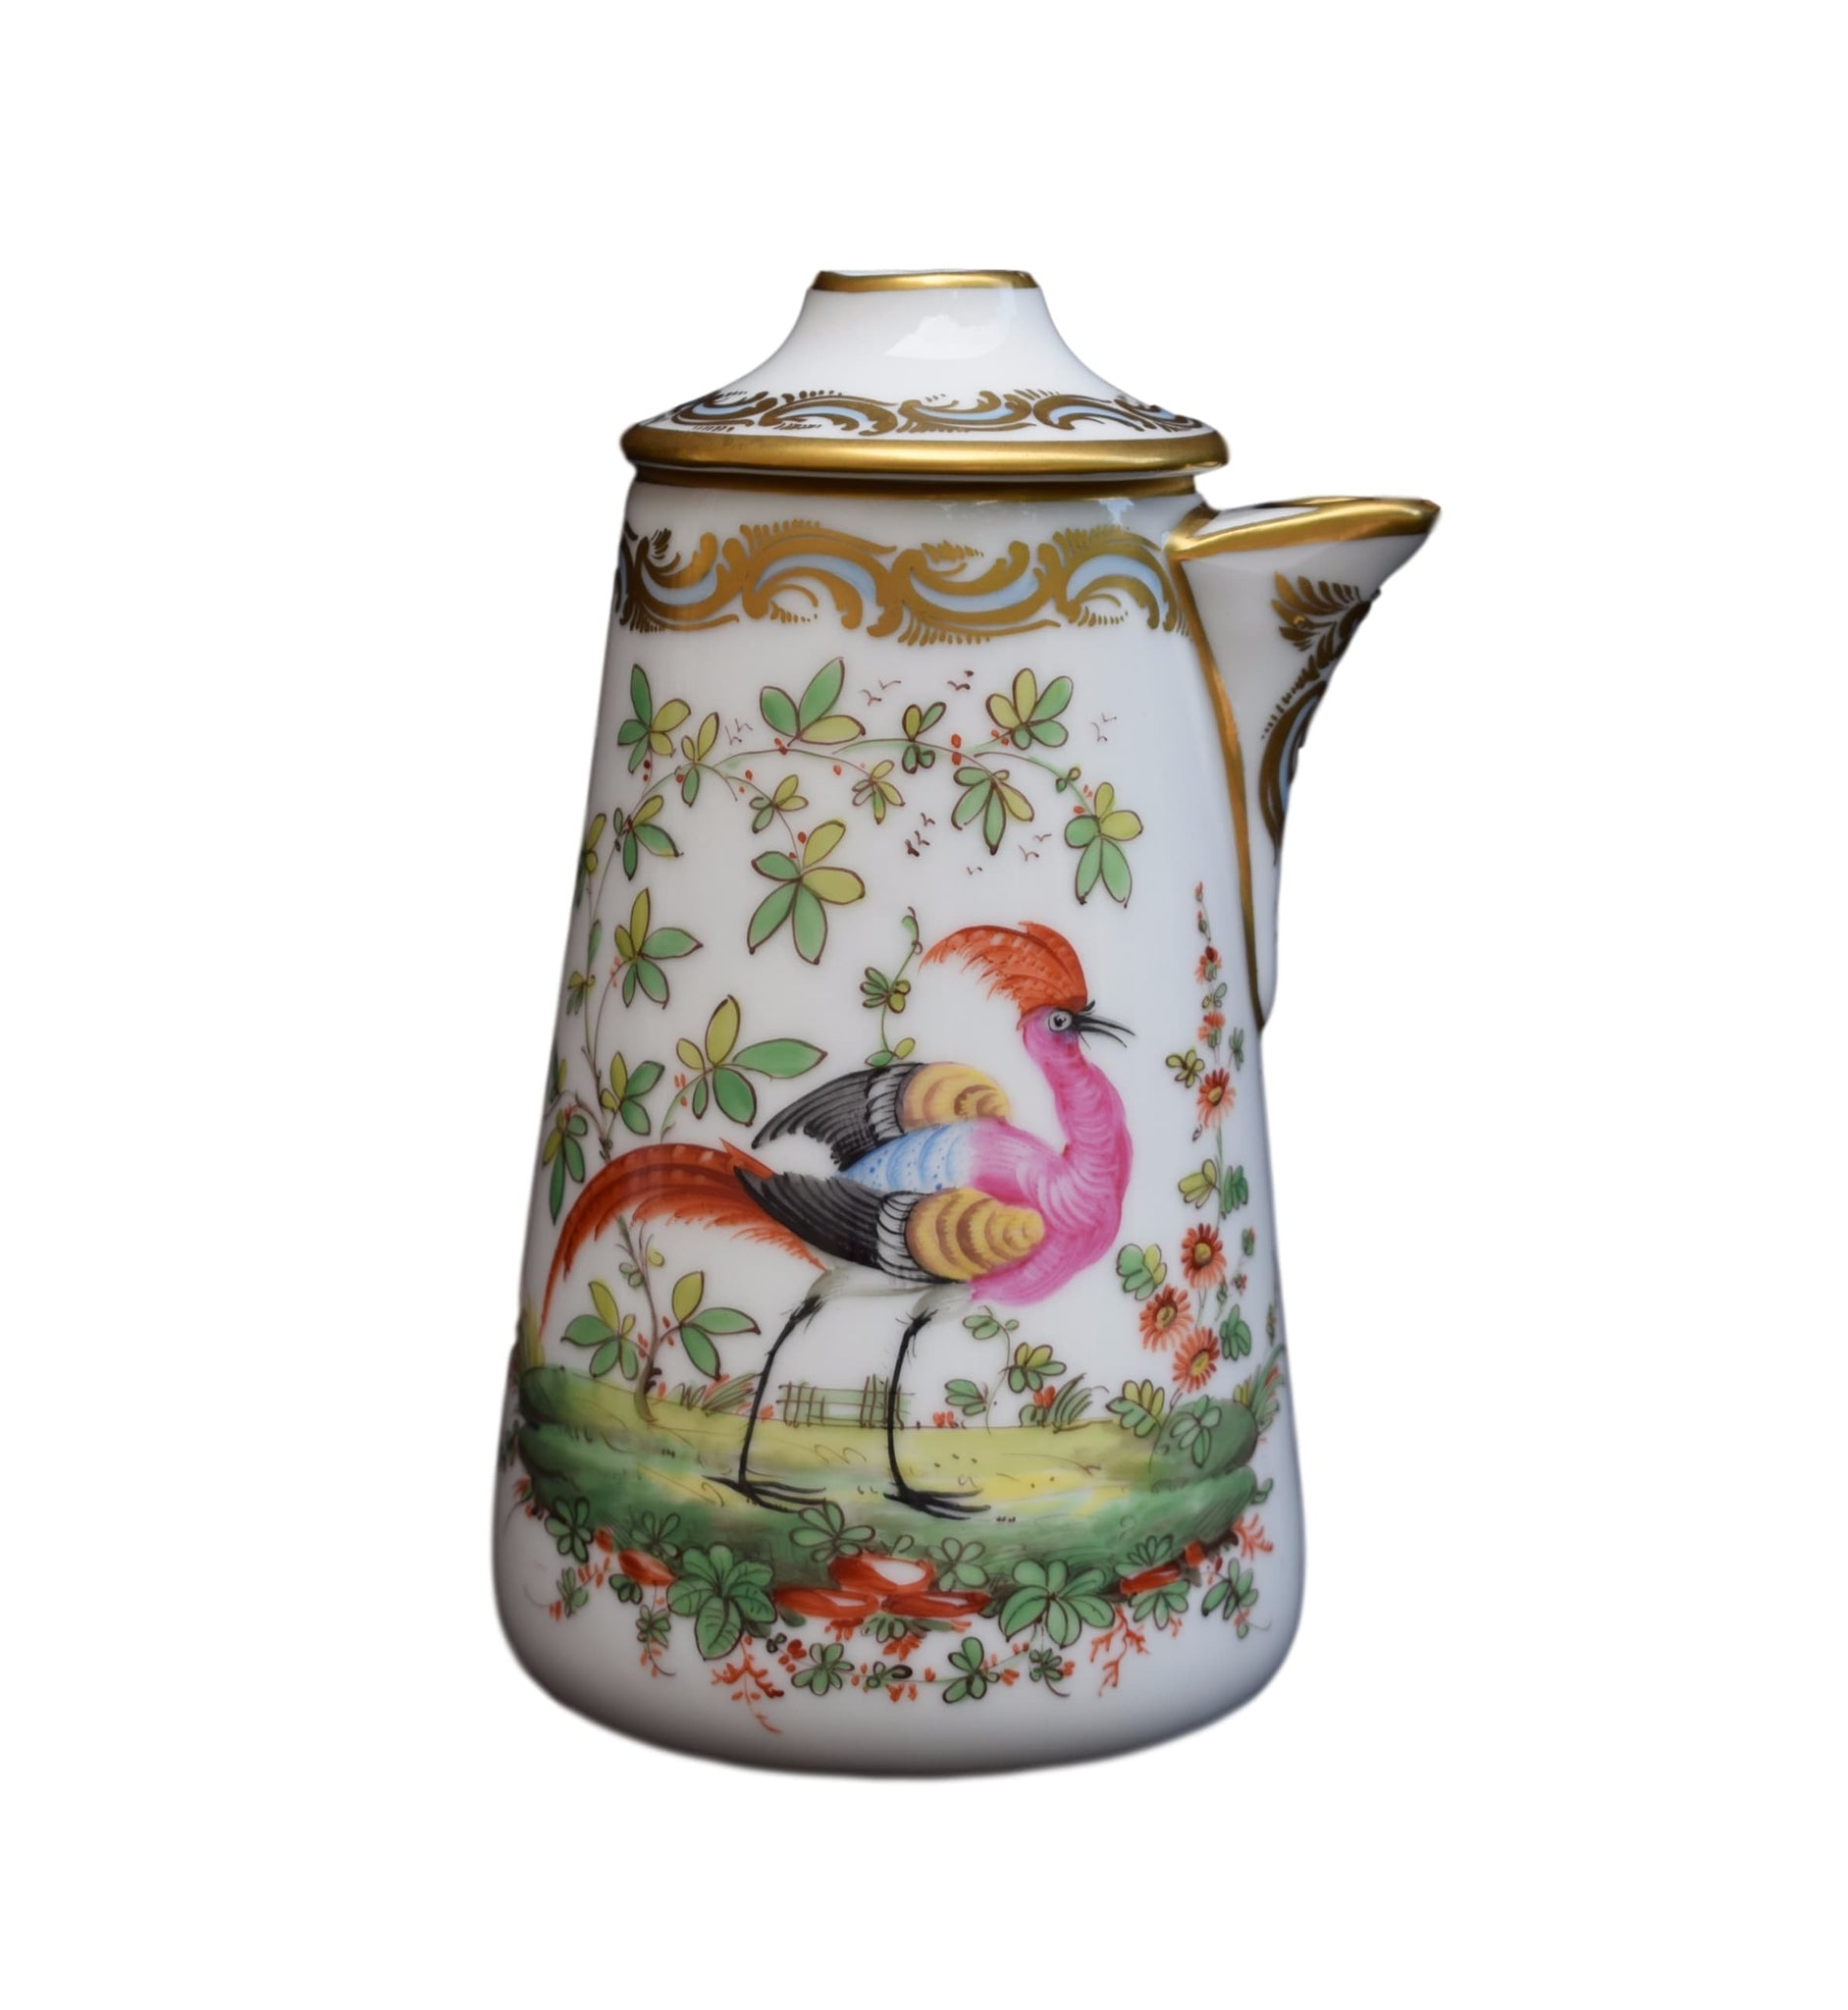 Chelsea Bird Chocolate Pot - Charmantiques